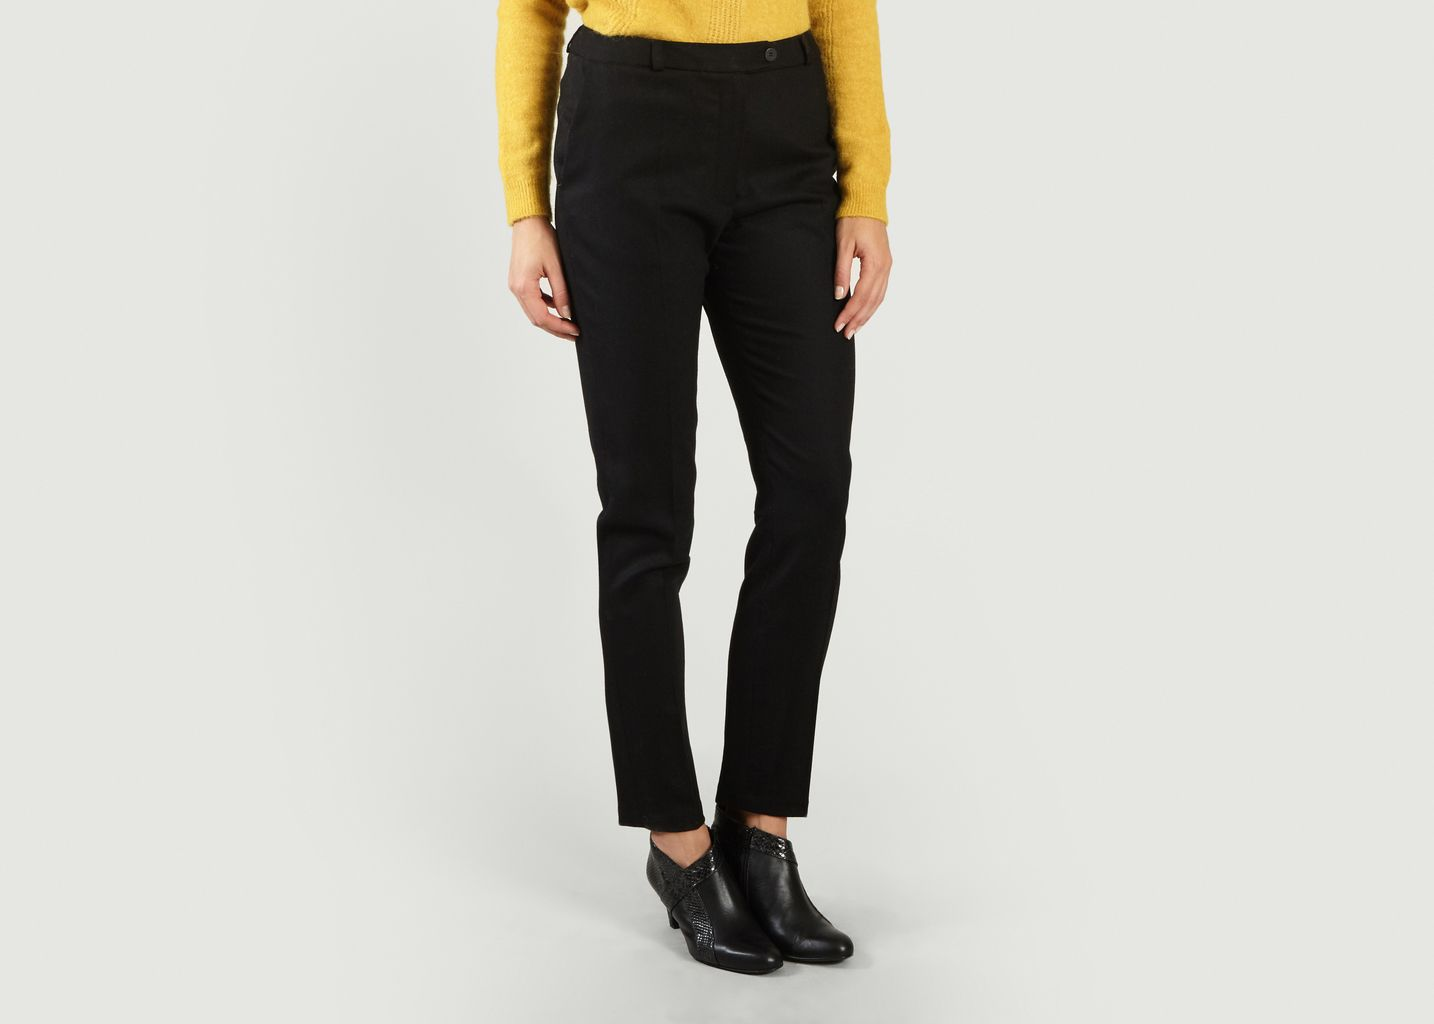 Pantalon Cigarette - Cacharel